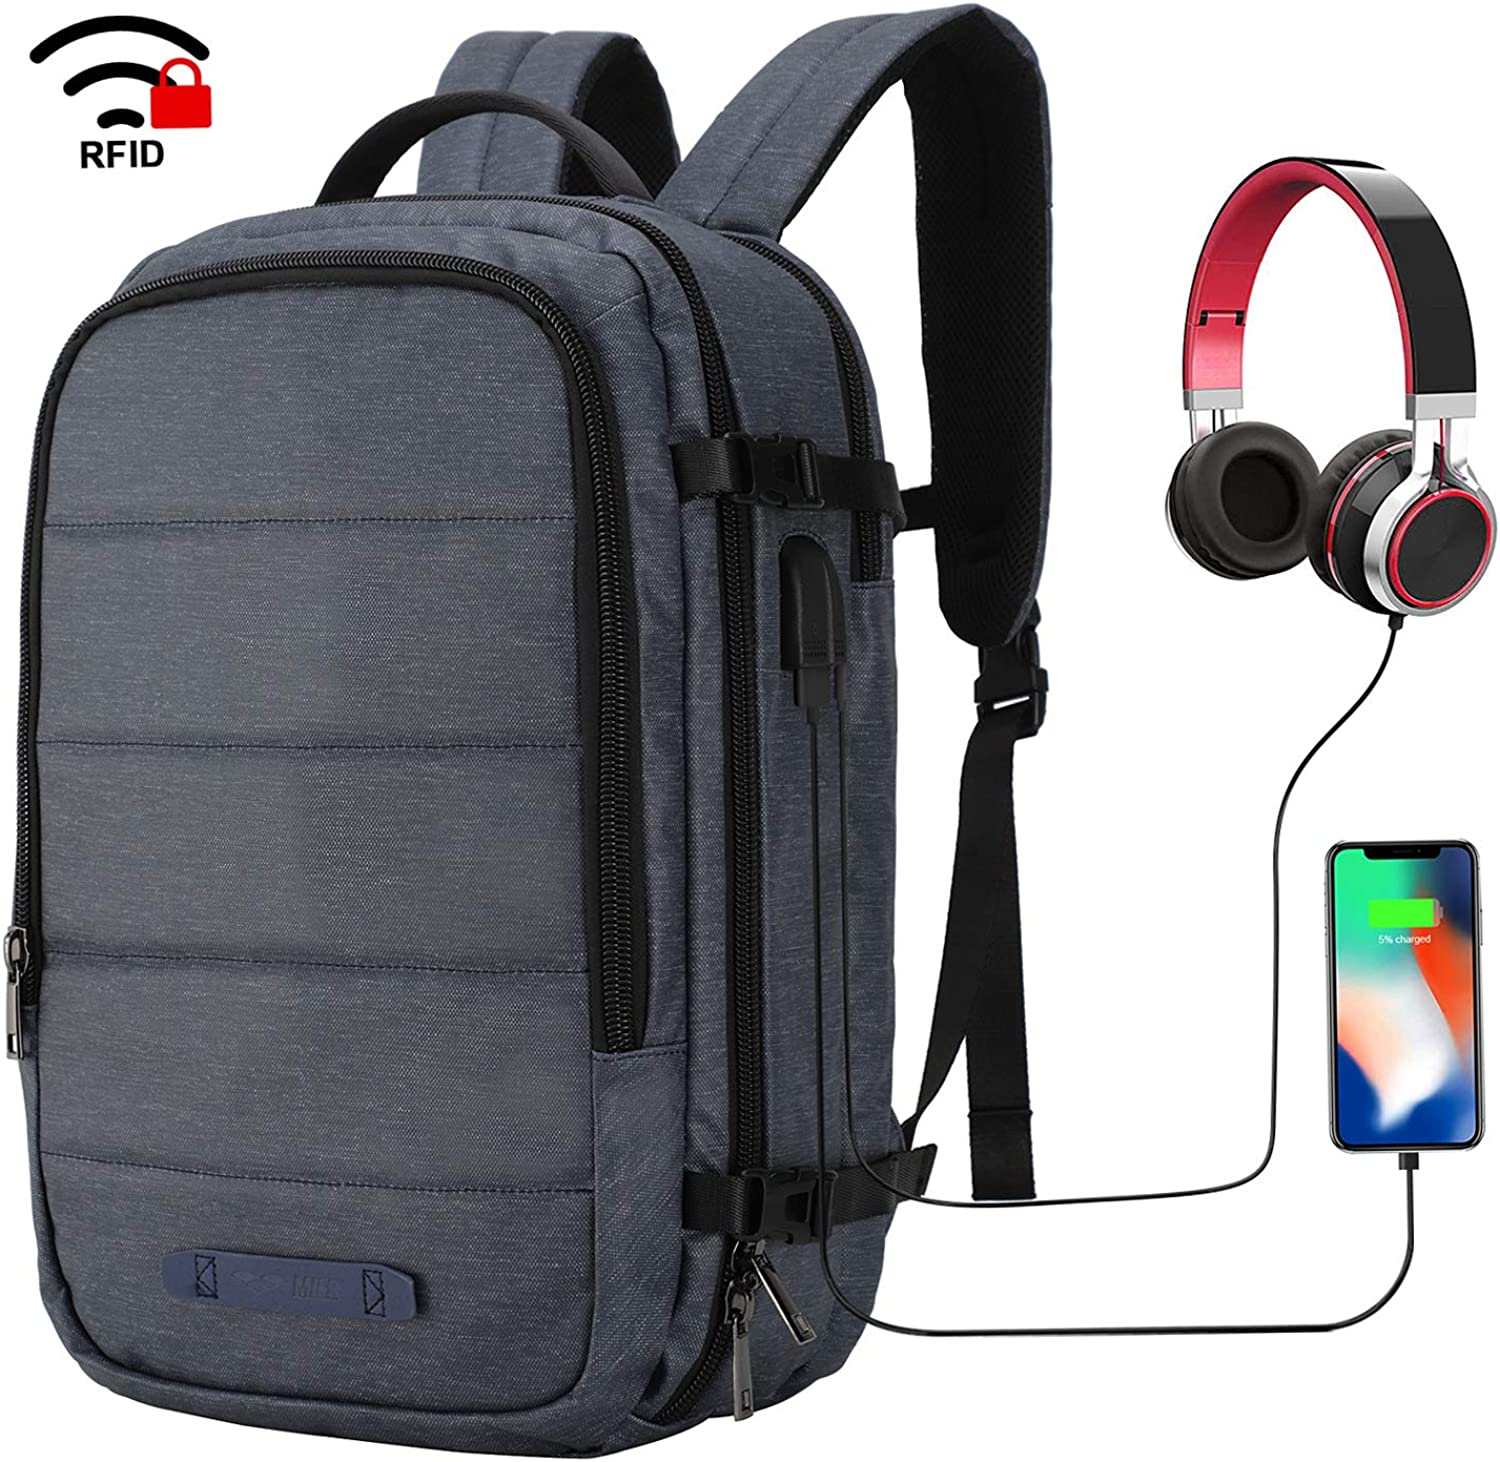 MIER Travel Laptop Backpack Anti-theft Backpack with USB Charging Port